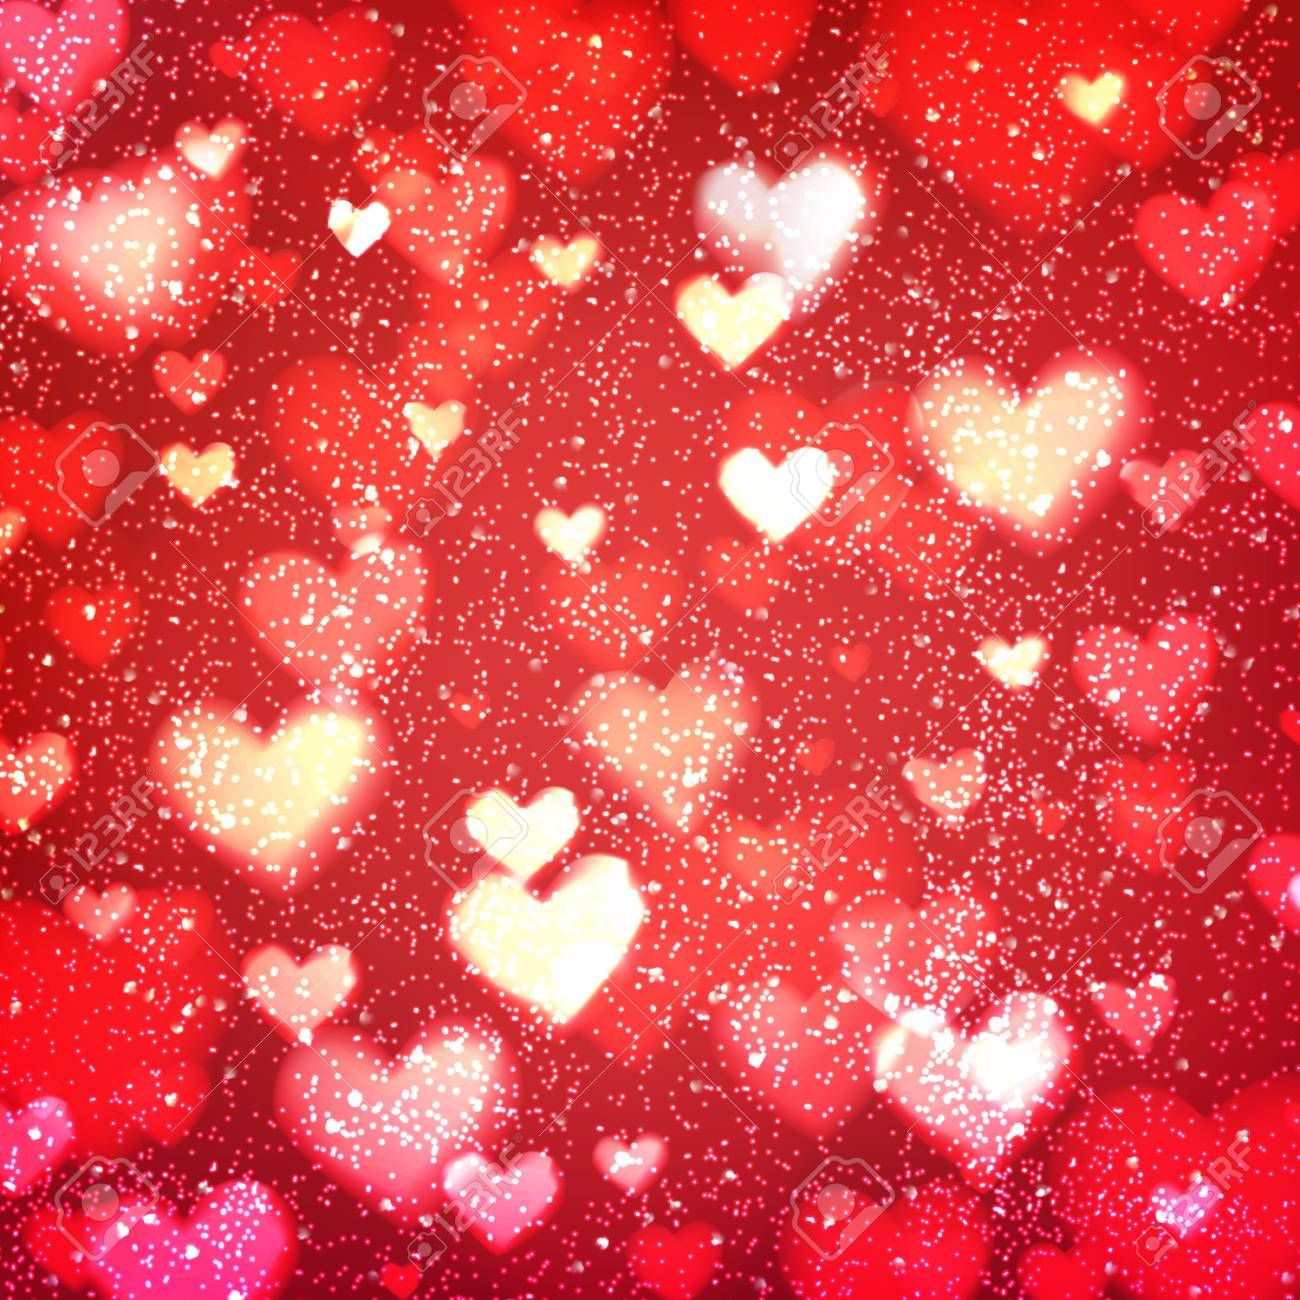 photo stock vector abstract romantic red background with hearts and bokeh lights st valentines day wallpaper blurred gl